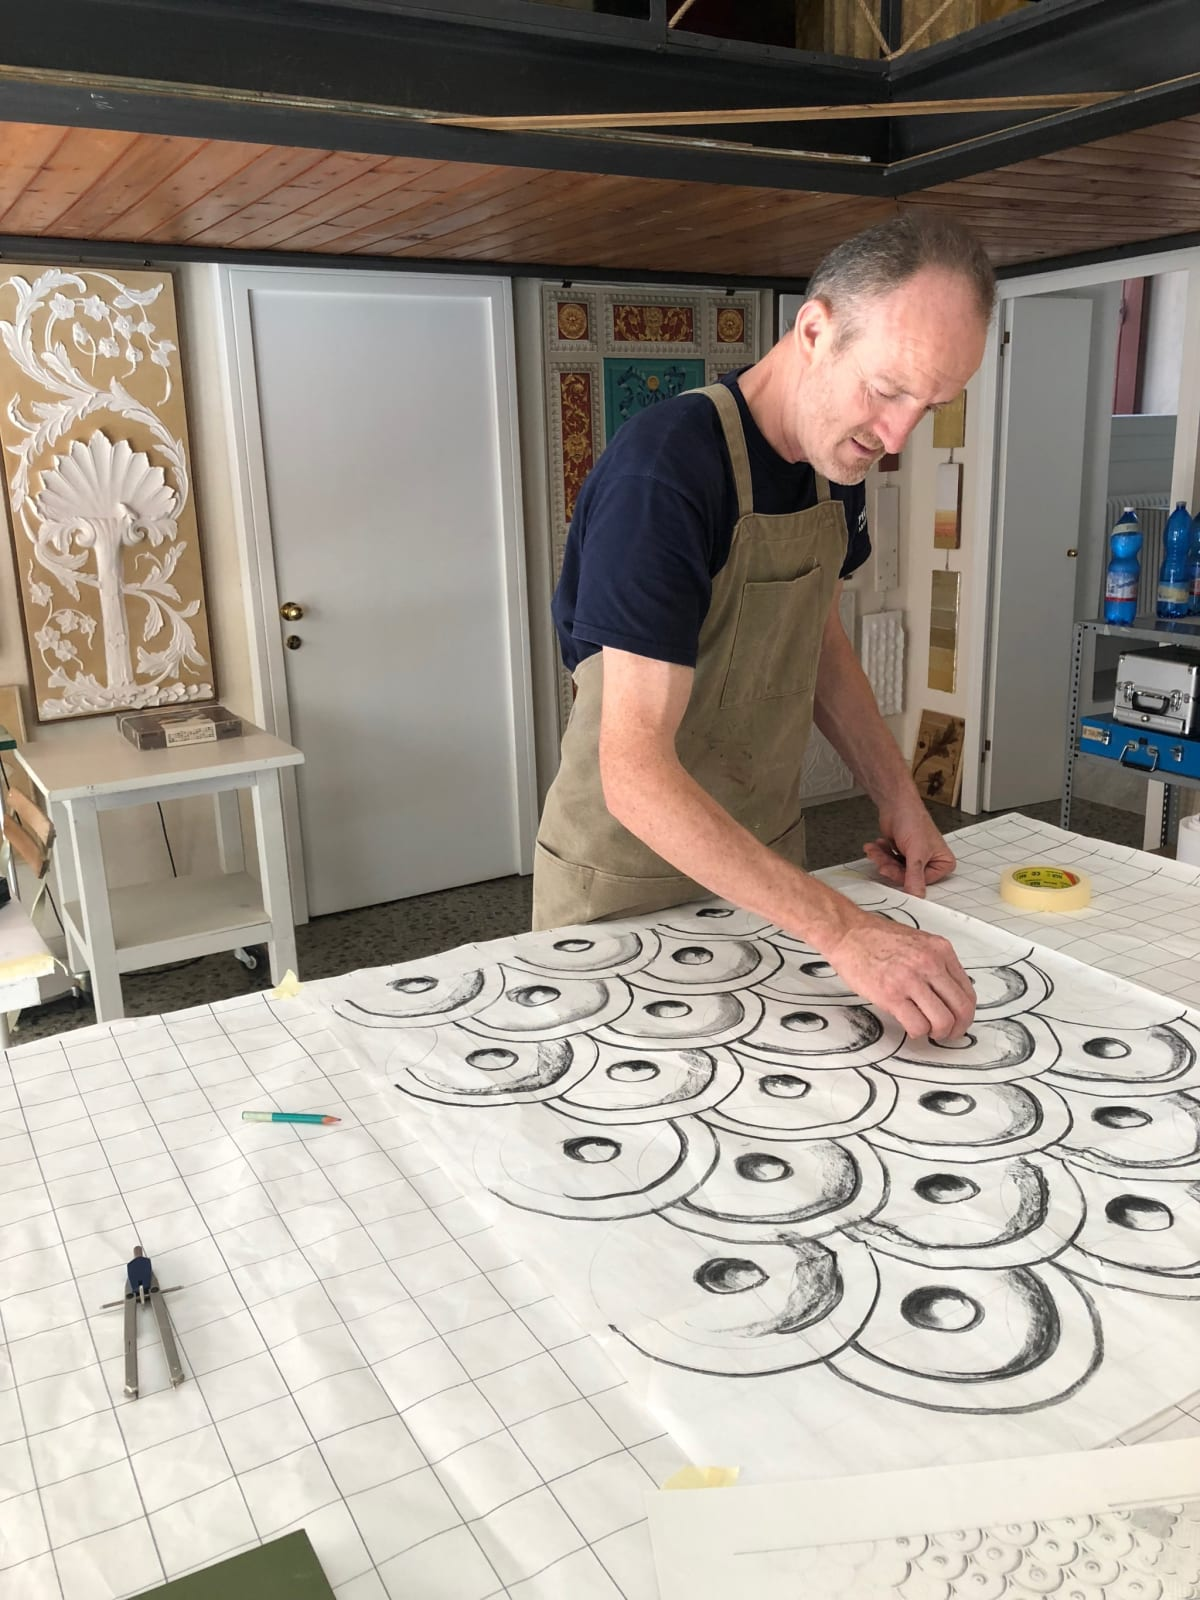 Sketching the Arch and Dome bas-relief design